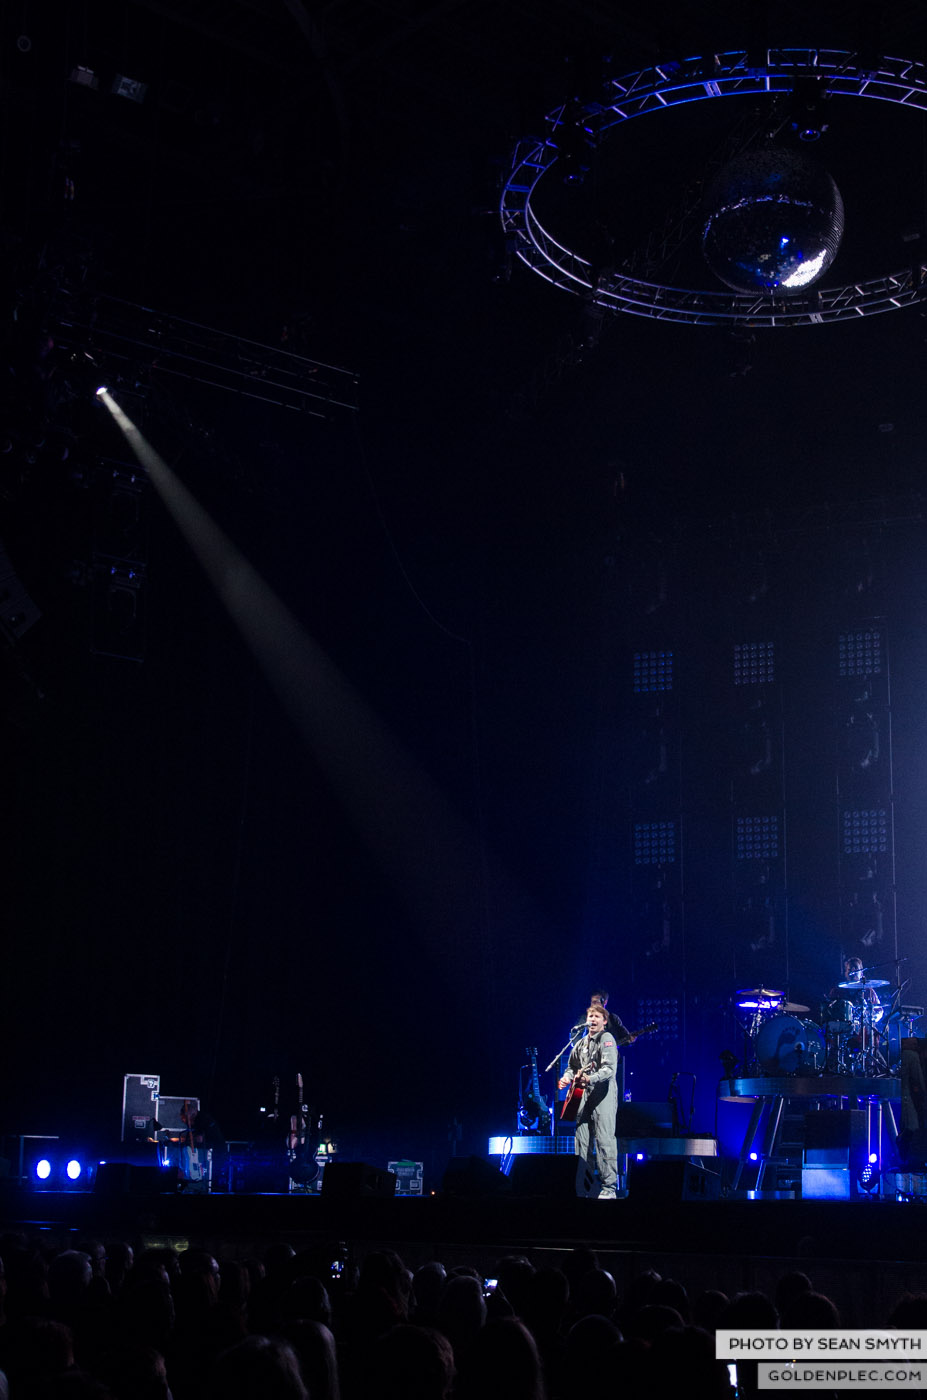 james-blunt-at-3arena-by-sean-smyth-20-11-14-23-of-29